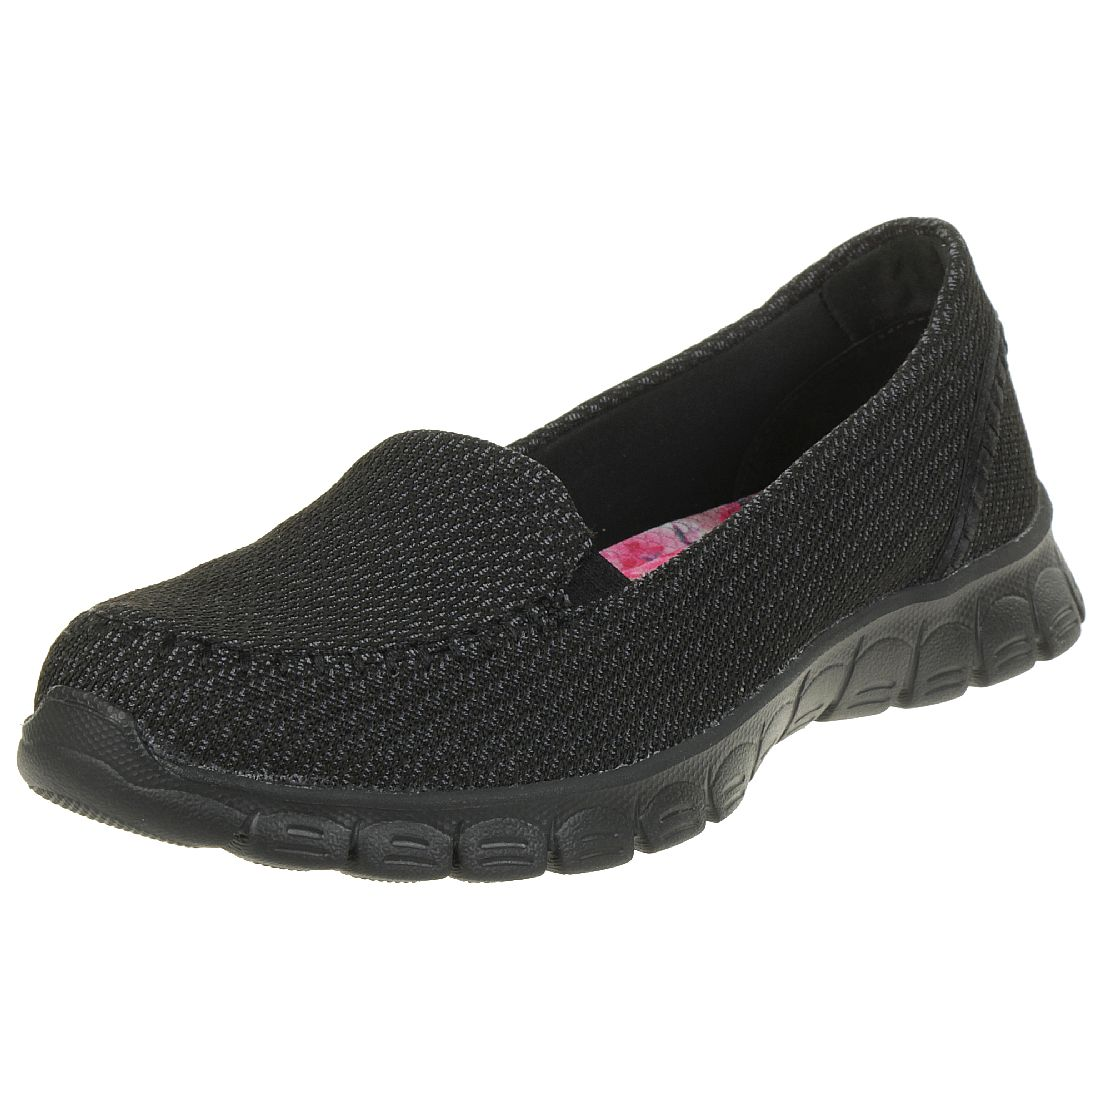 Skechers EZ Flex 3.0 Quick Escapade Damen Sommerschuhe Slip On GRY Ballerinas